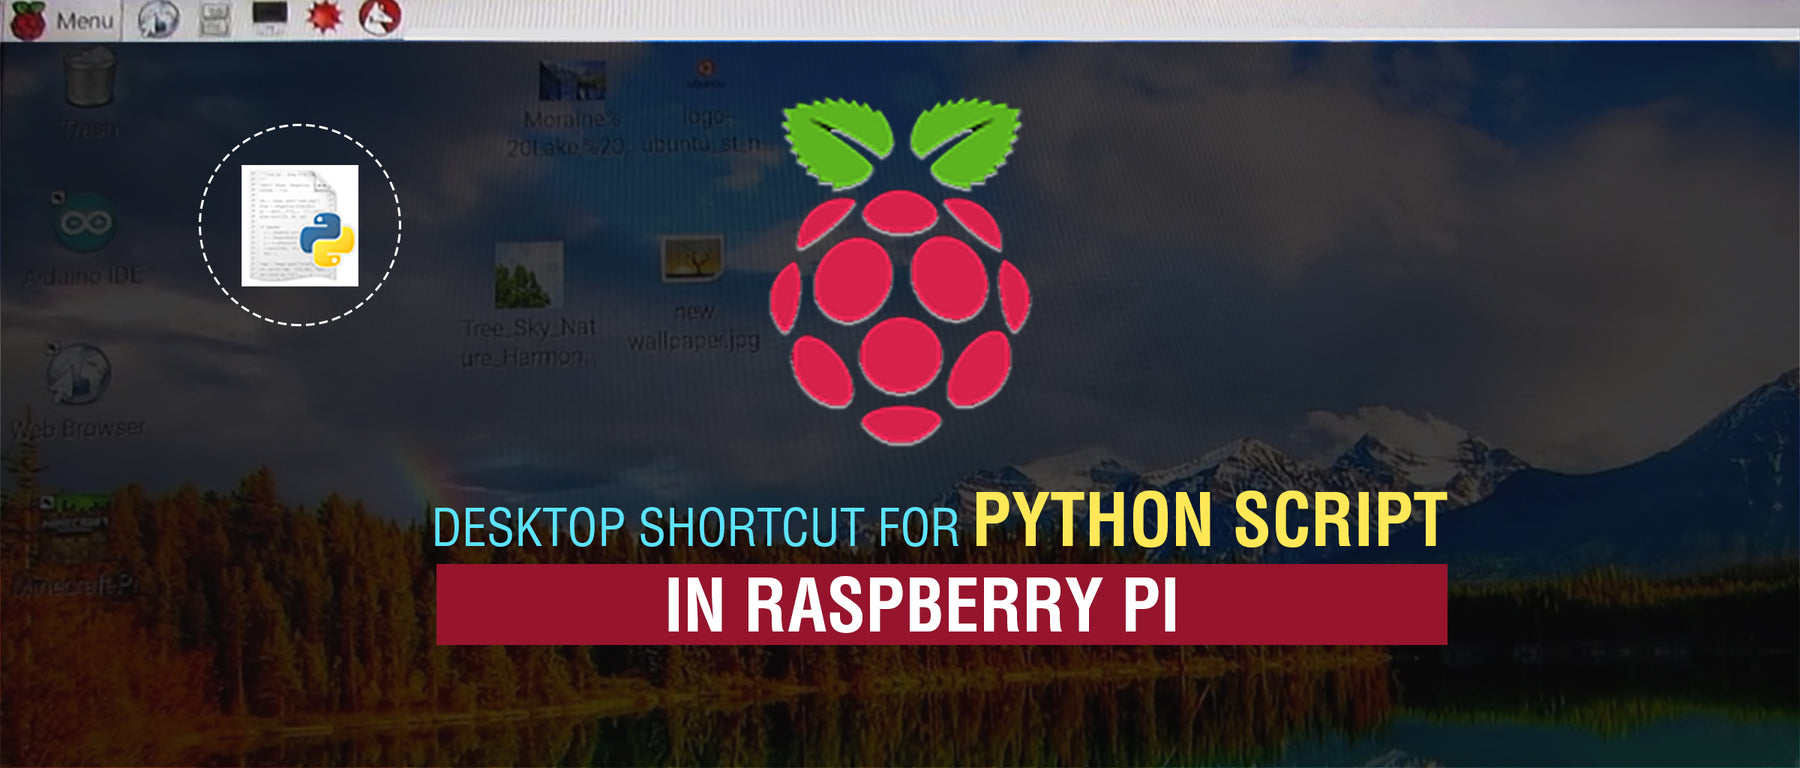 Desktop Shortcut for Python Script on Raspberry Pi